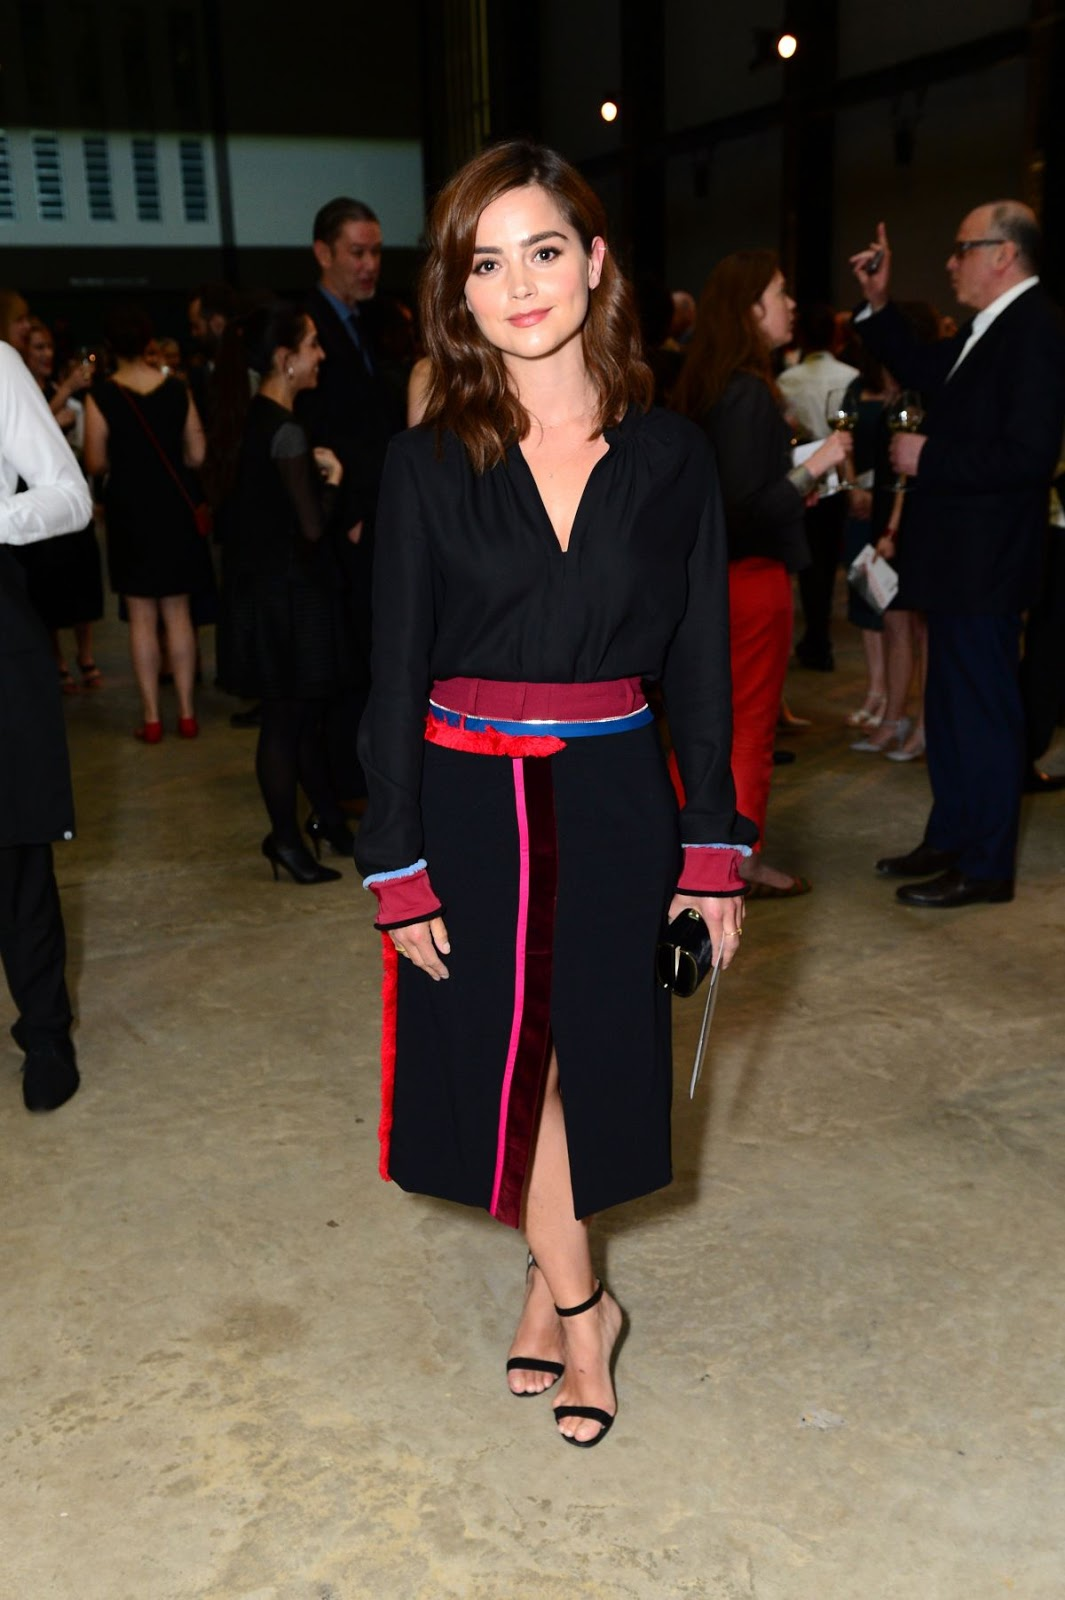 Jenna Coleman at Tate Modern Extension Opening Party In London